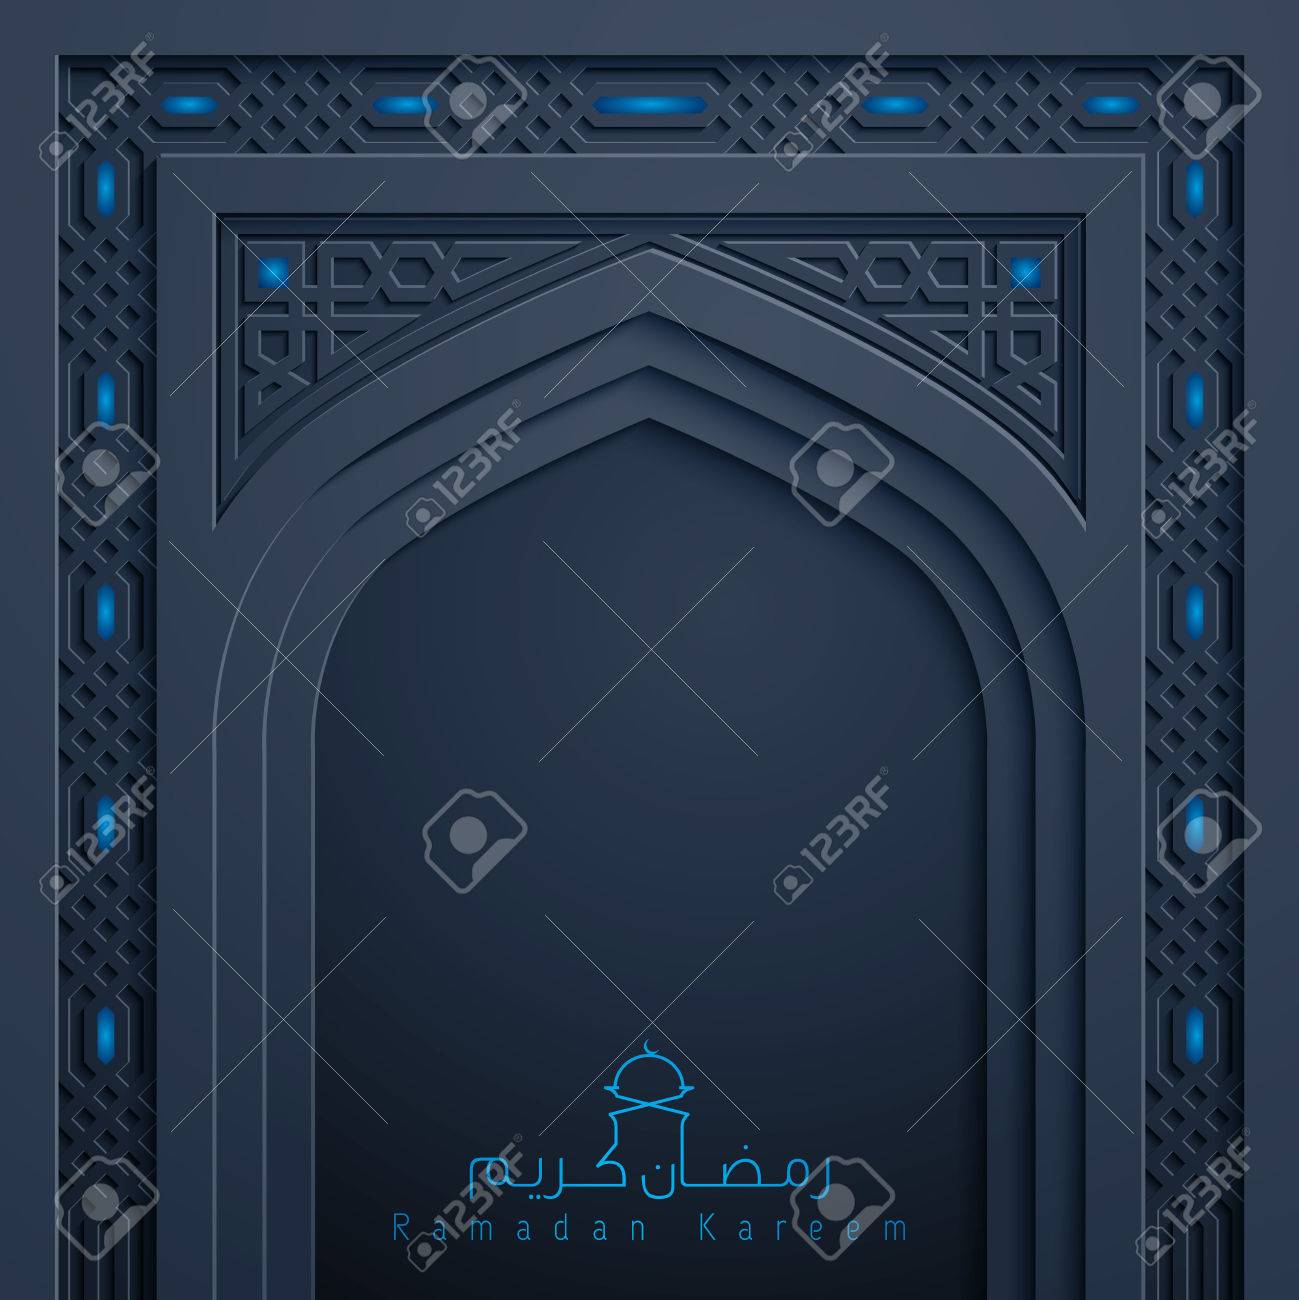 Ramadan Kareem greeting background islamic design mosque door arabic pattern Stock Vector - 57004183  sc 1 st  123RF.com & Ramadan Kareem Greeting Background Islamic Design Mosque Door ...